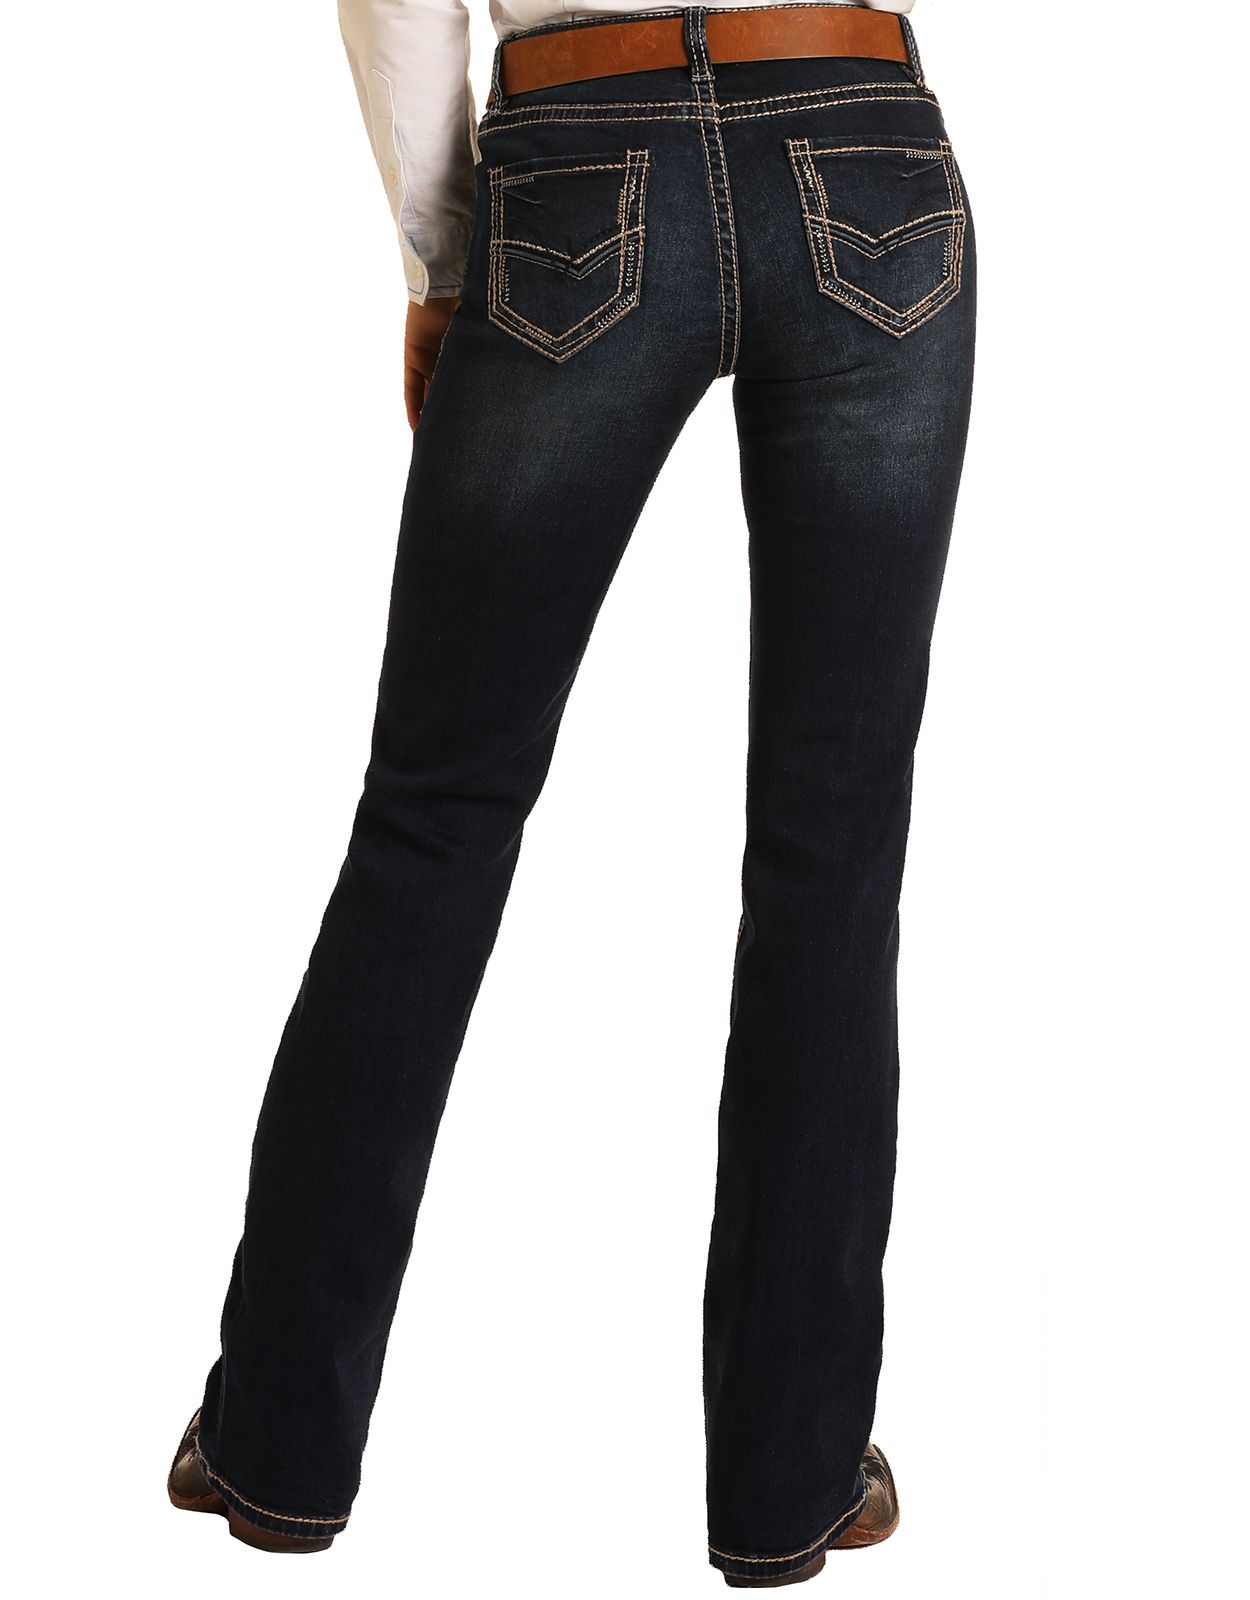 Rock & Roll Cowgirl Women's Extra Stretch Riding Mid Rise Regular Fit Boot Cut Jeans - Dark Vintage